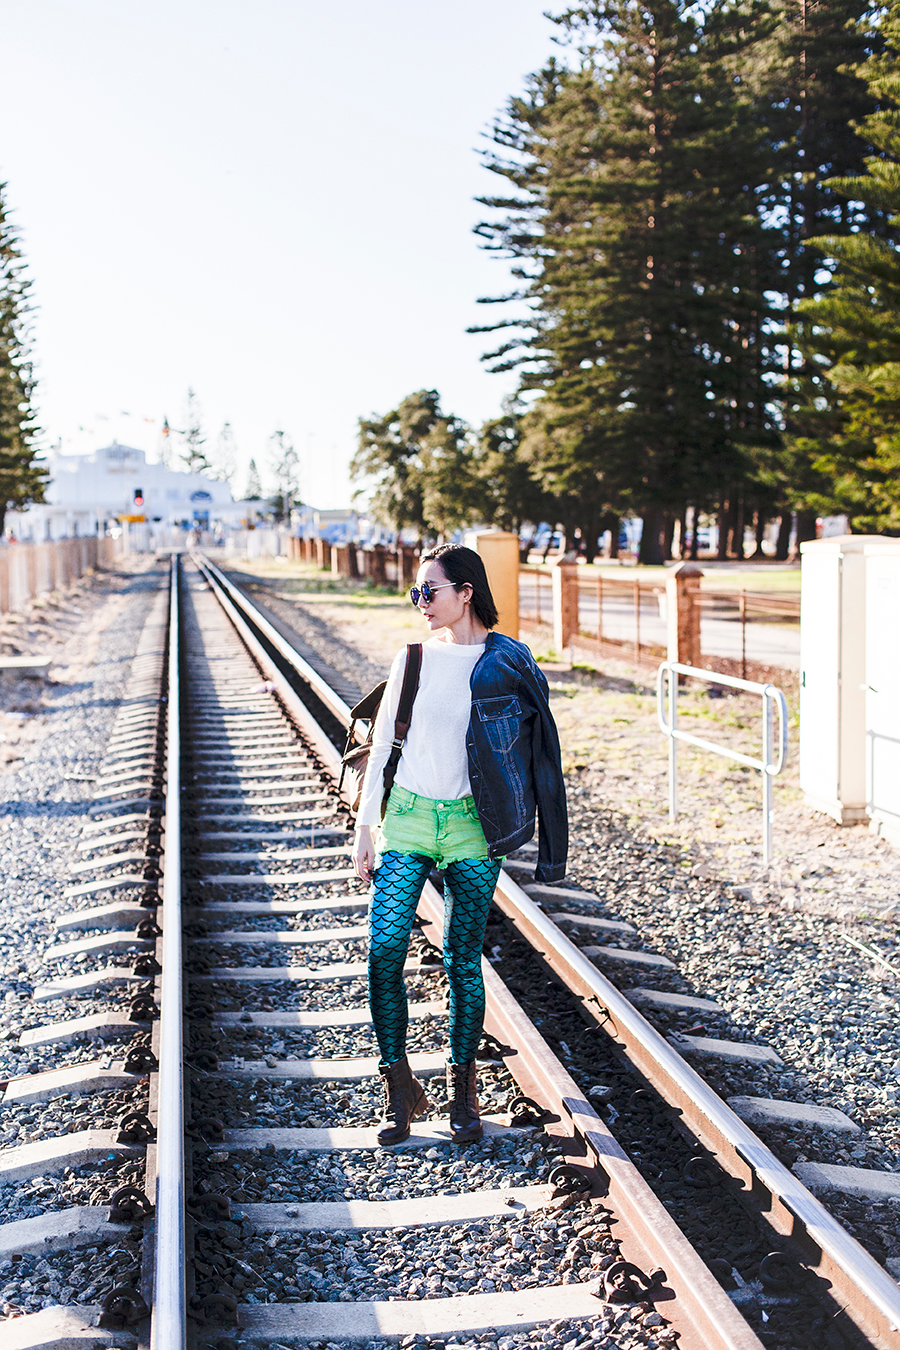 Railroad outfit: GU white knit sweater, Forever 21 green crop denim shorts, mermaid shimmer leggings, Blend denim jacket, Fossil backpack, Steve Madden boots.